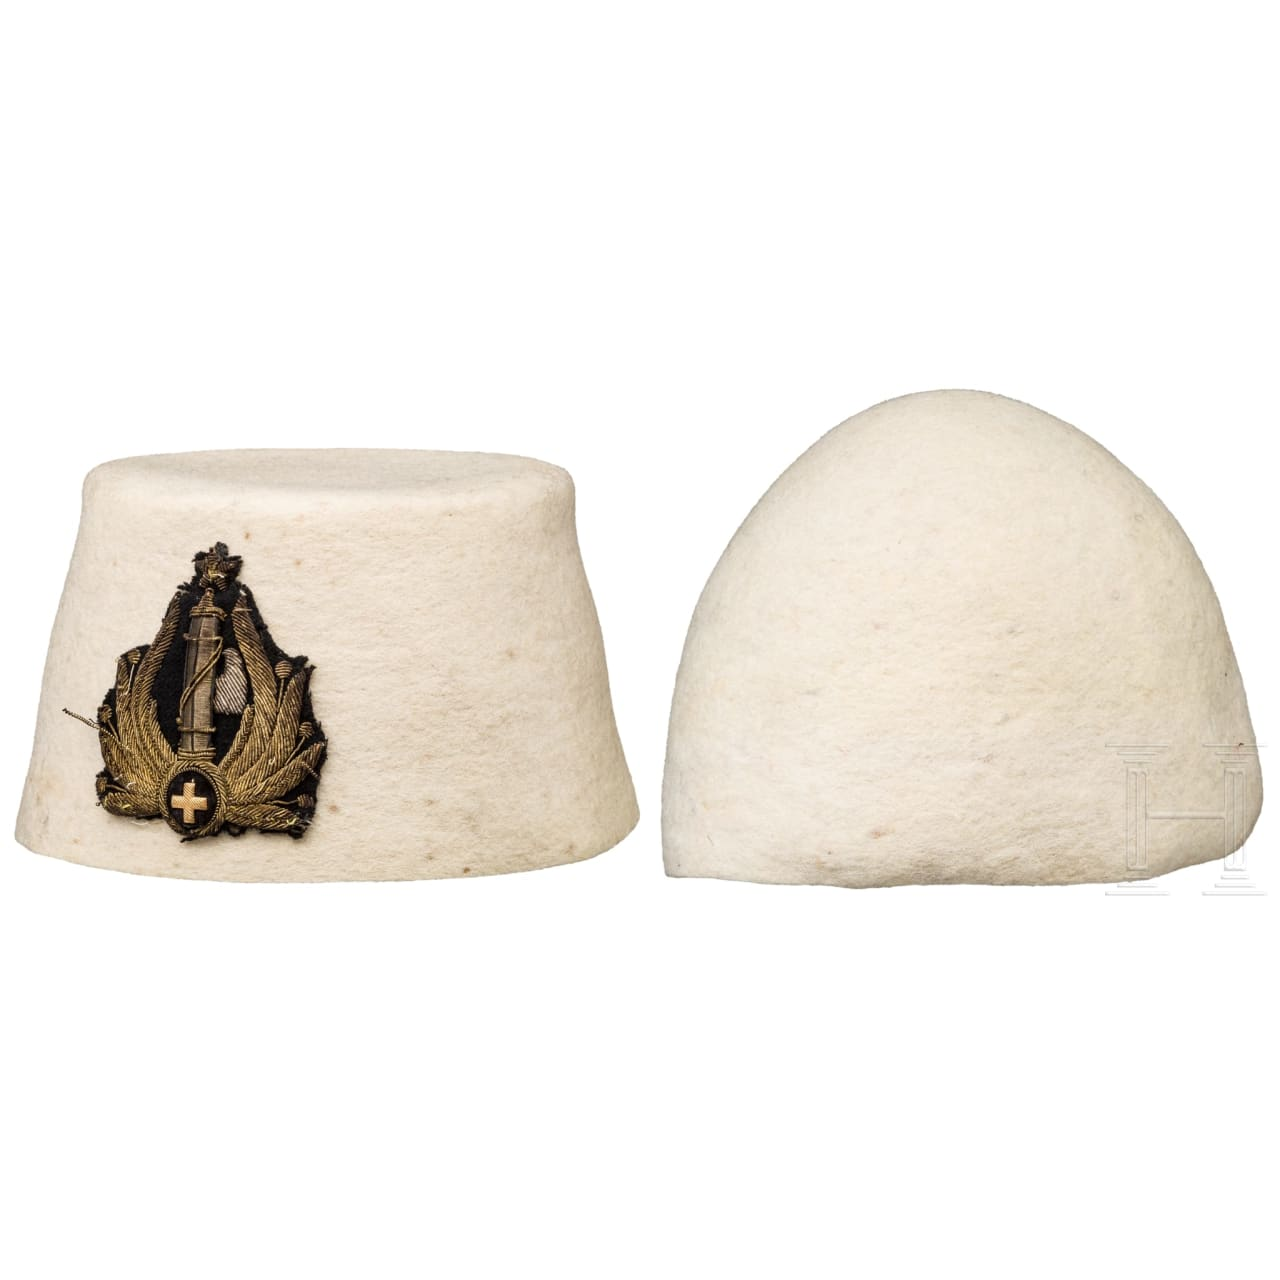 A fez of the Albanian MVSN